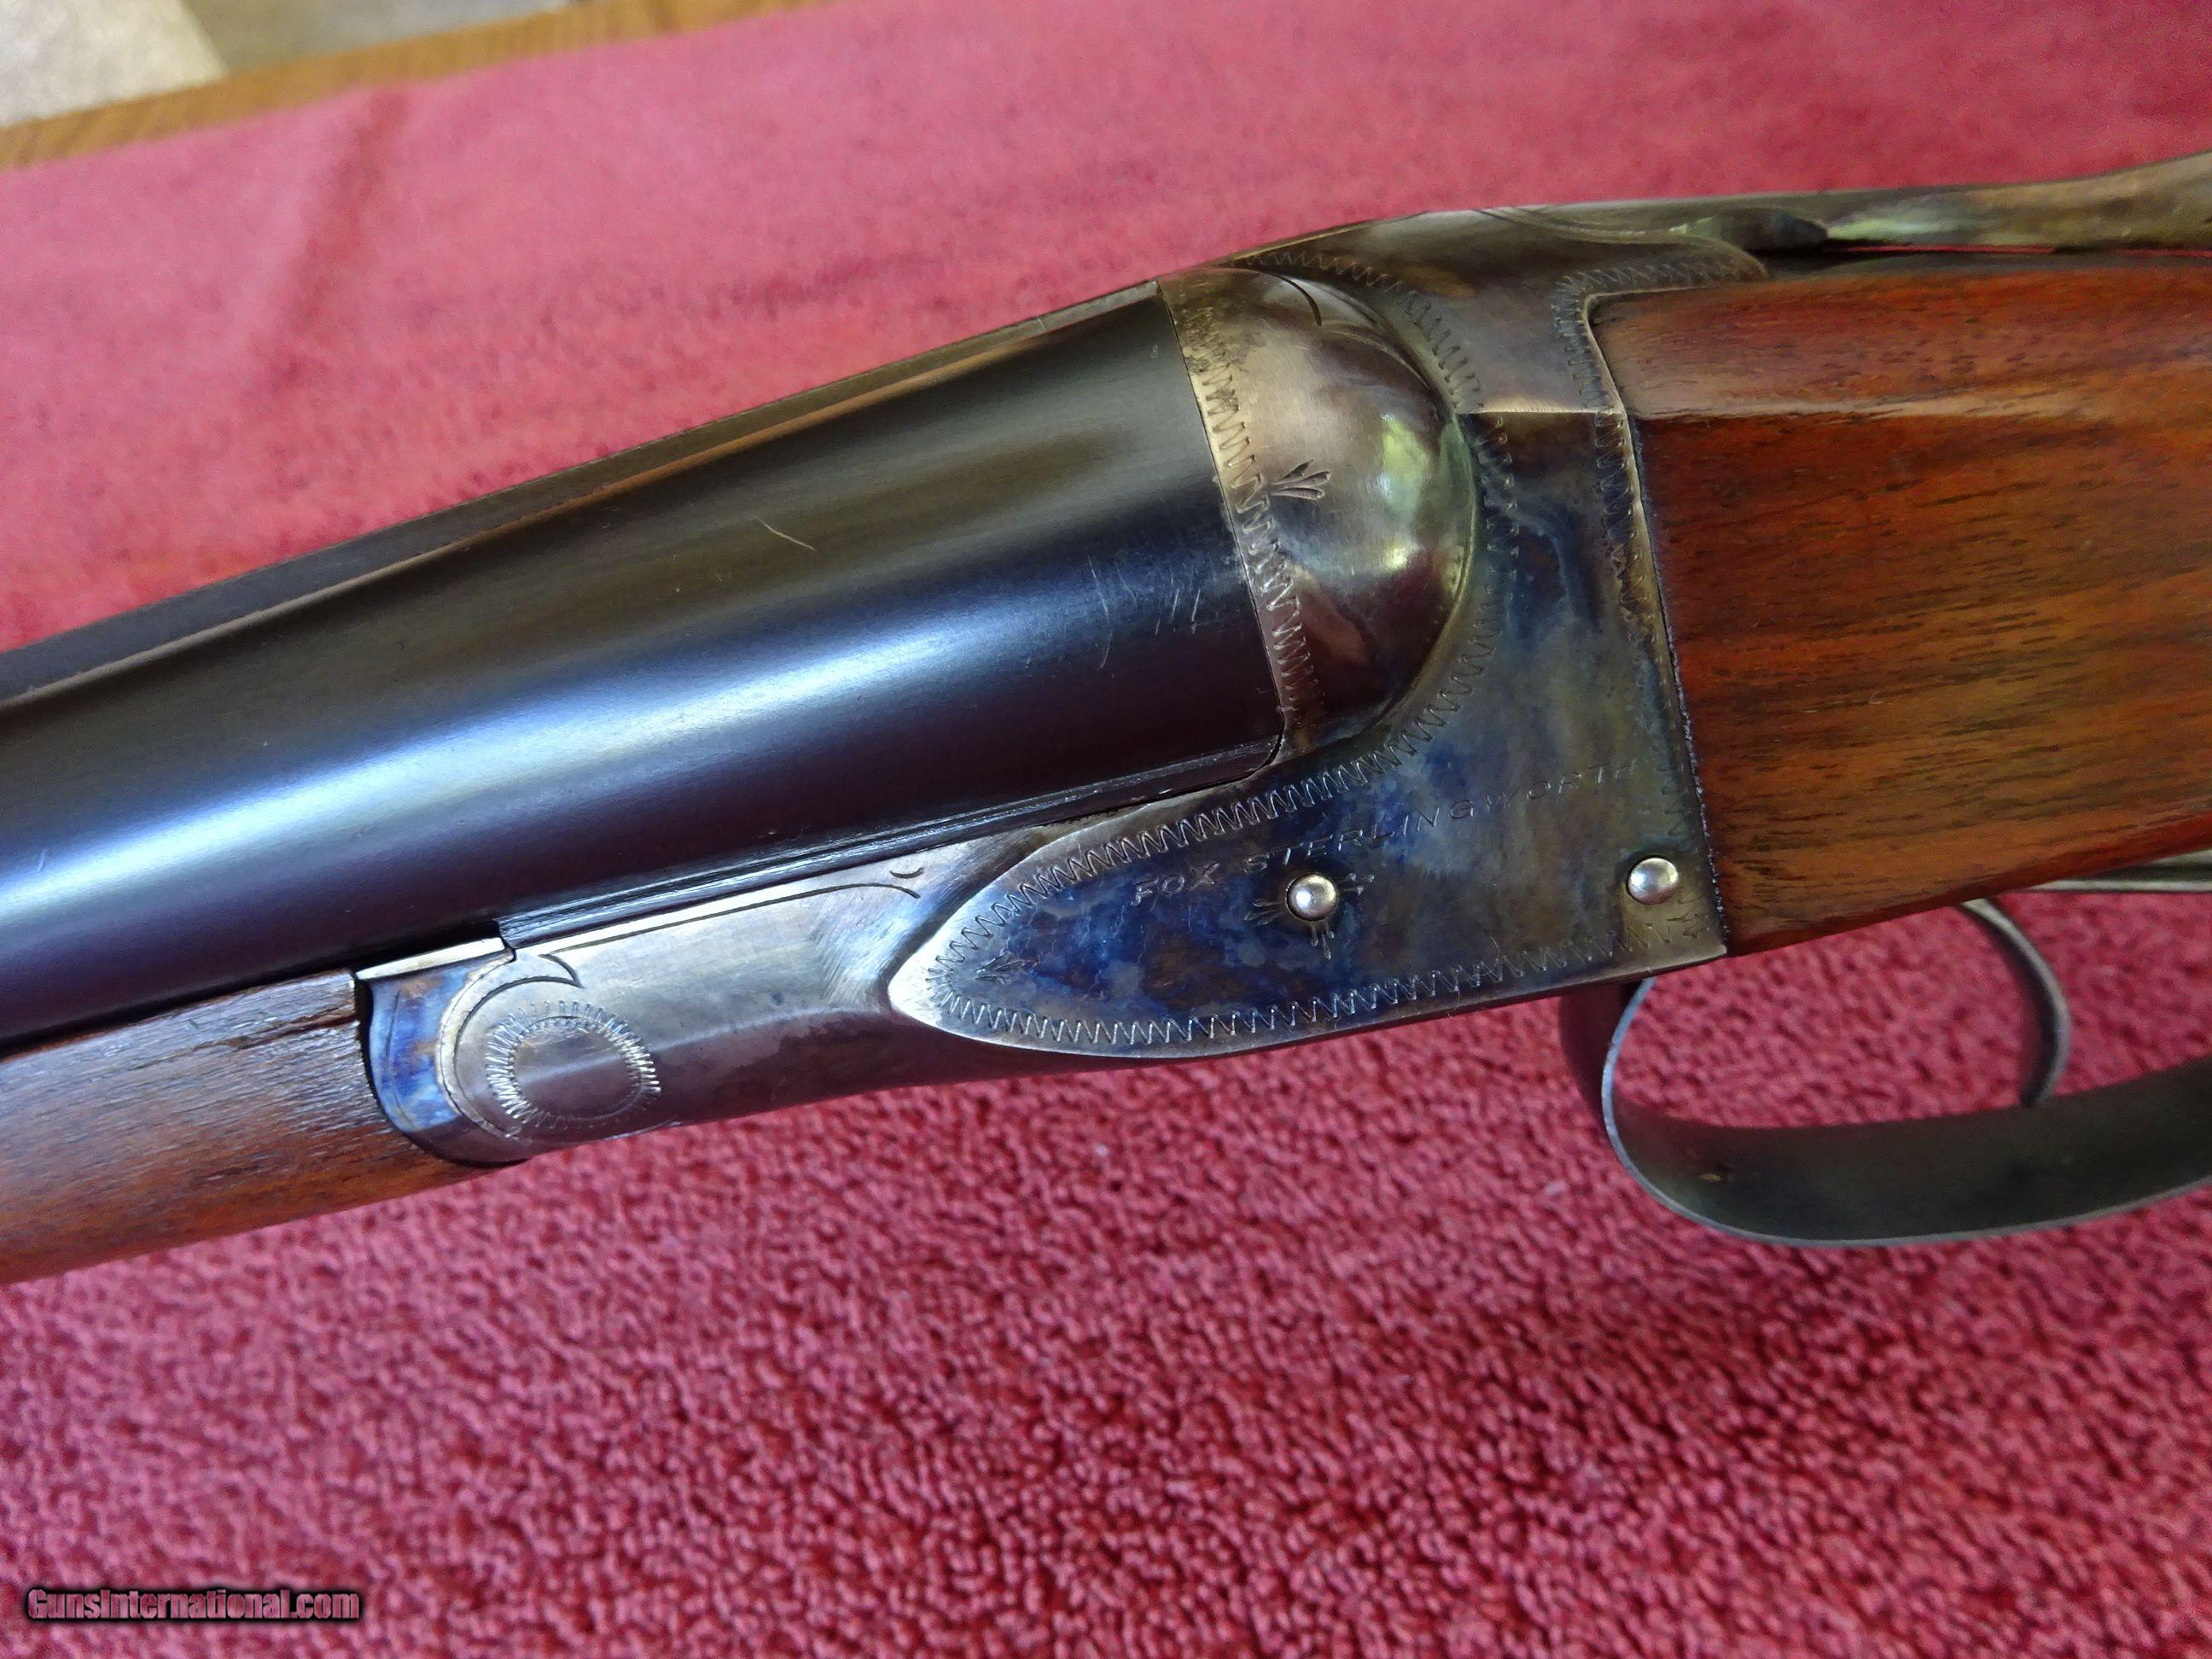 A H FOX, DELUXE STERLINGWORTH 16 GAUGE AUTOMATIC EJECTORS - 1 of 15 ...